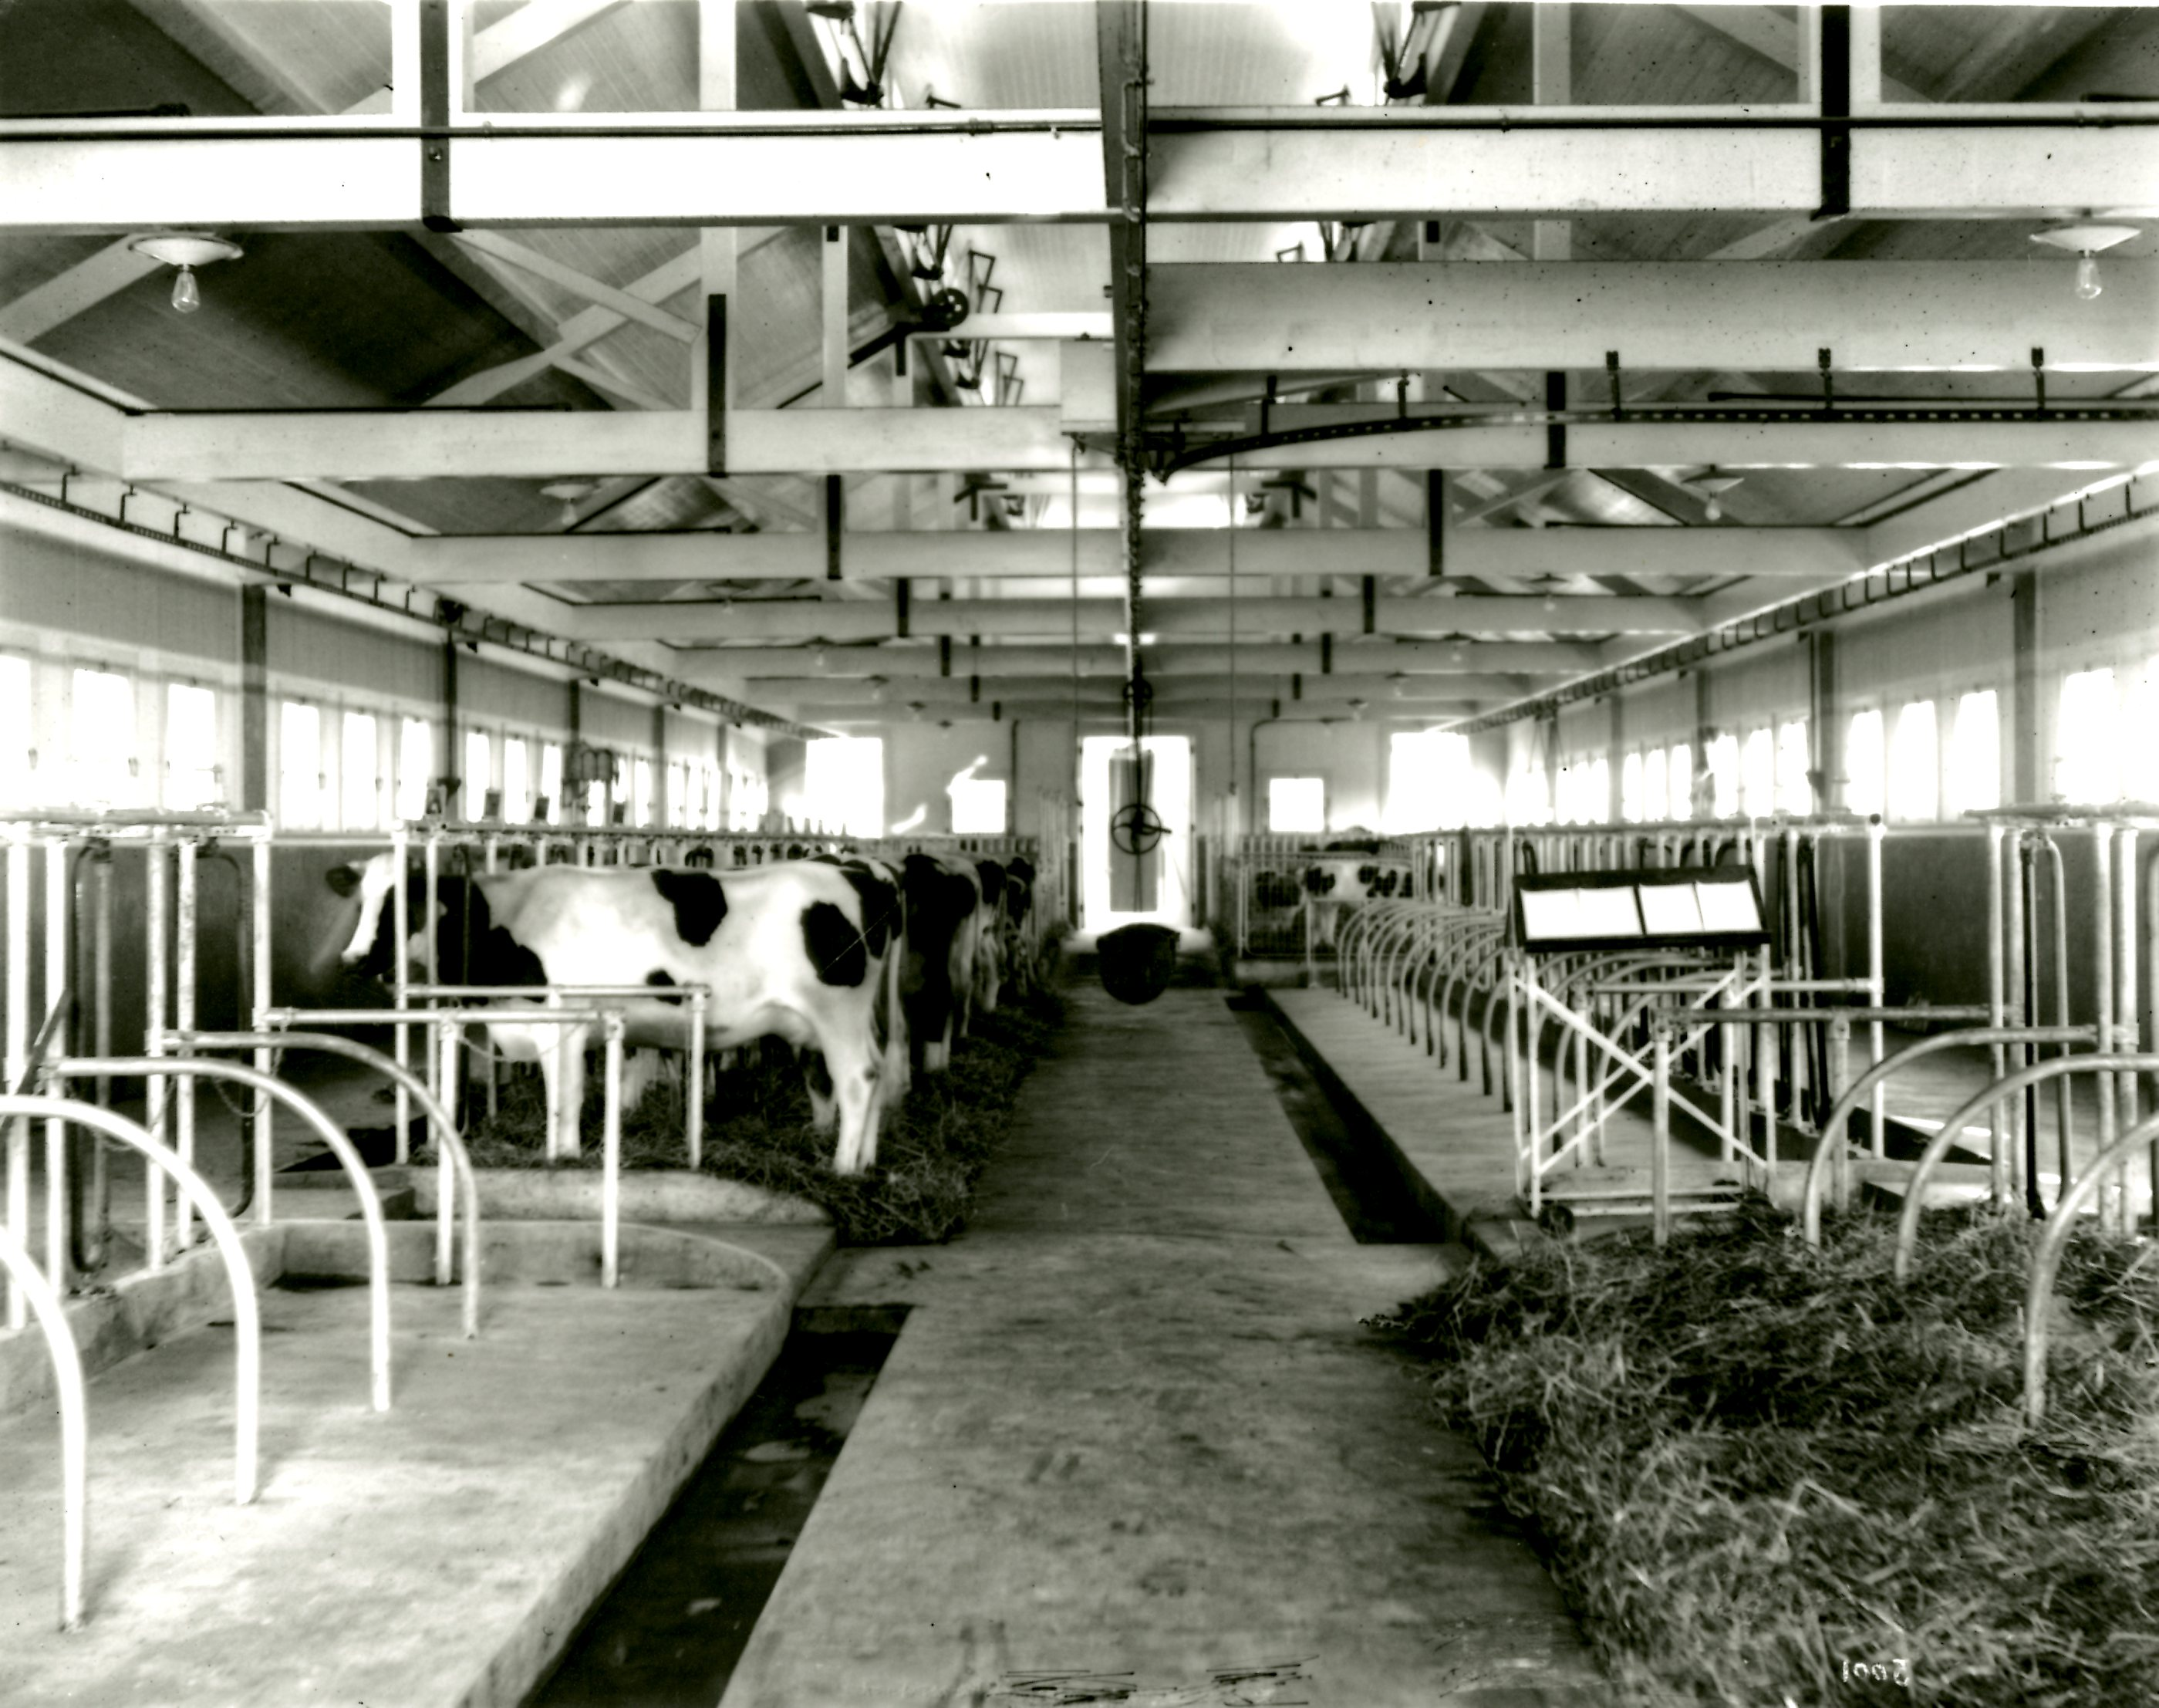 Breeding Barn Interior at Colony Farm, Circa 1912 (JPG) Opens in new window